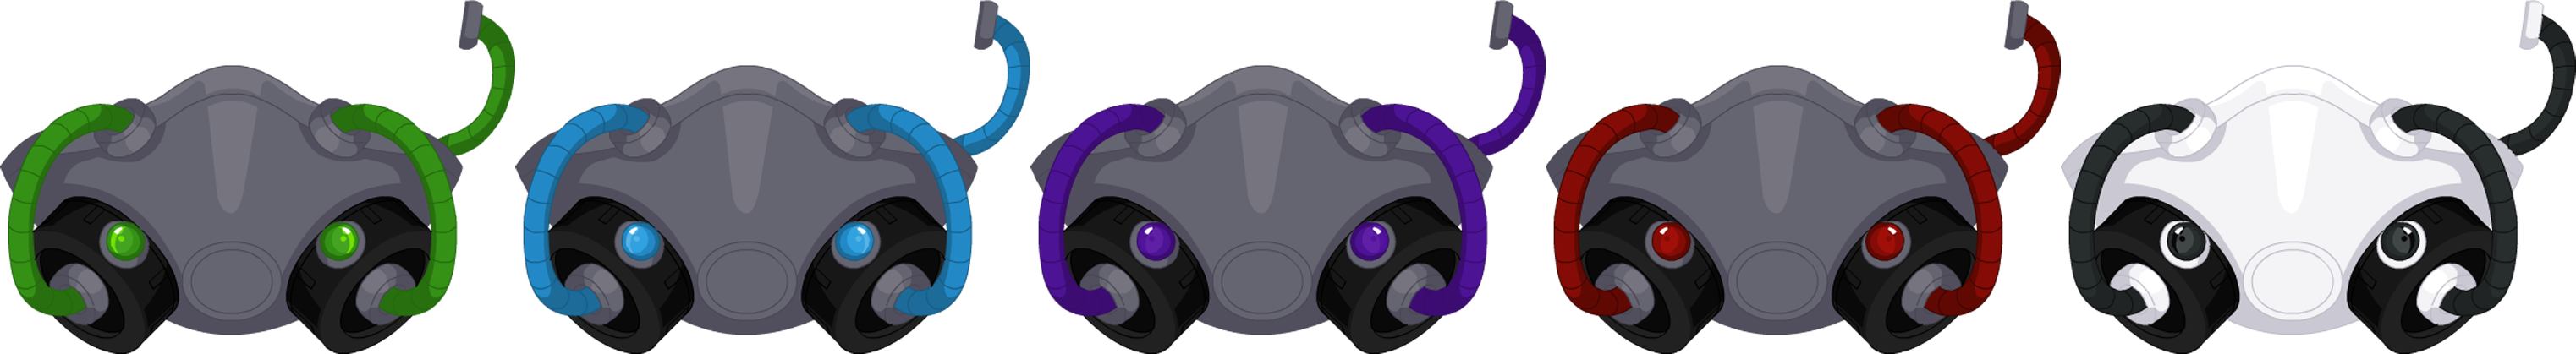 June 2015 Cyborg Raver Mask